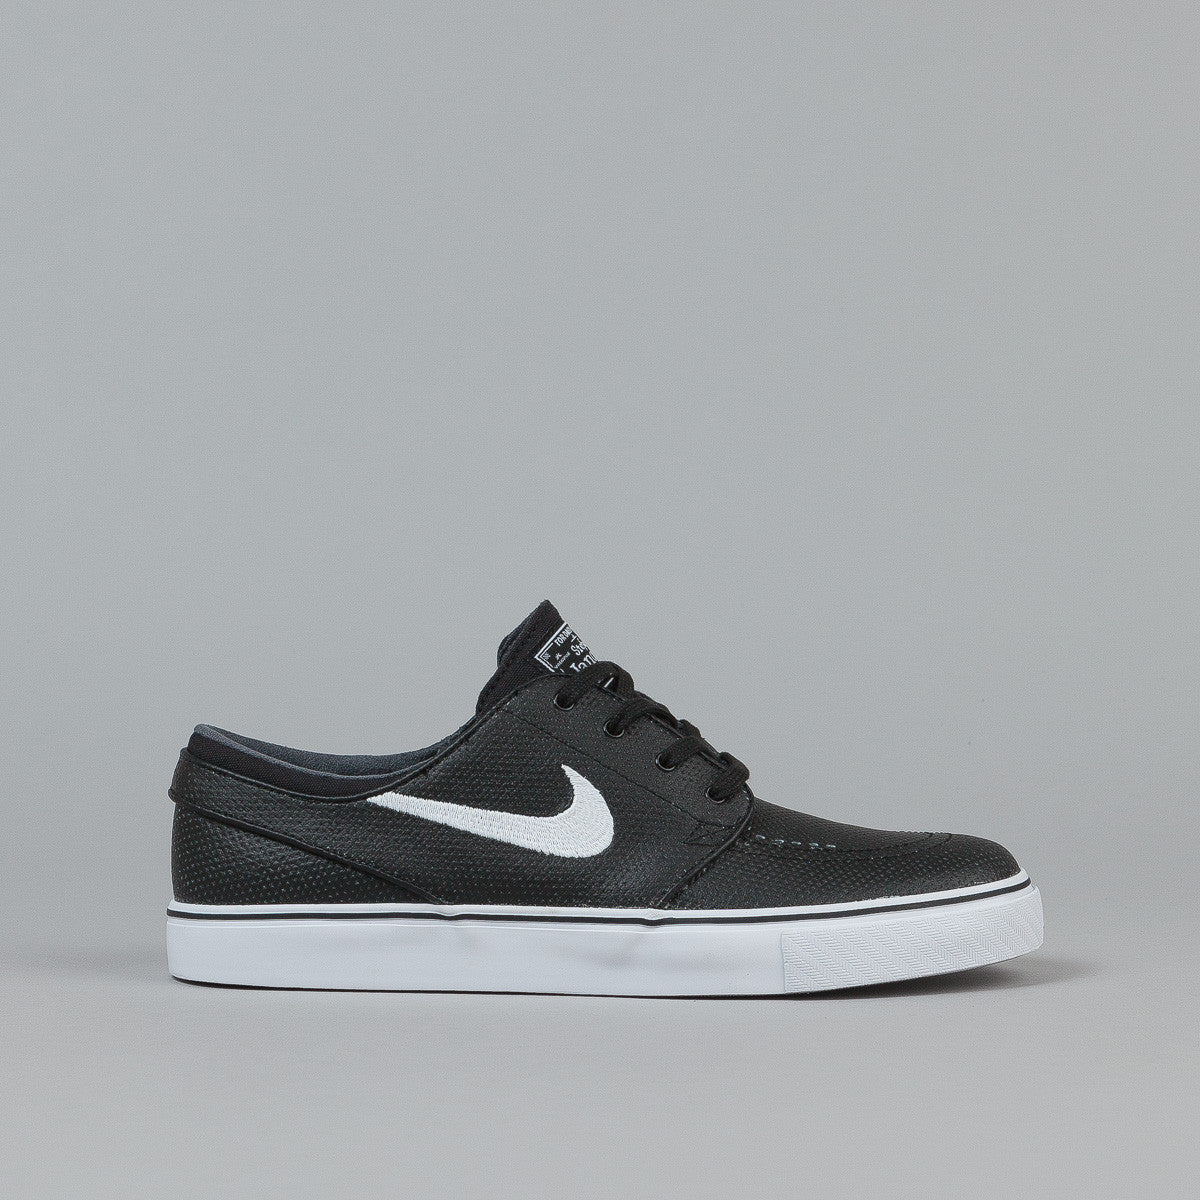 Nike SB Stefan Janoski L Shoes